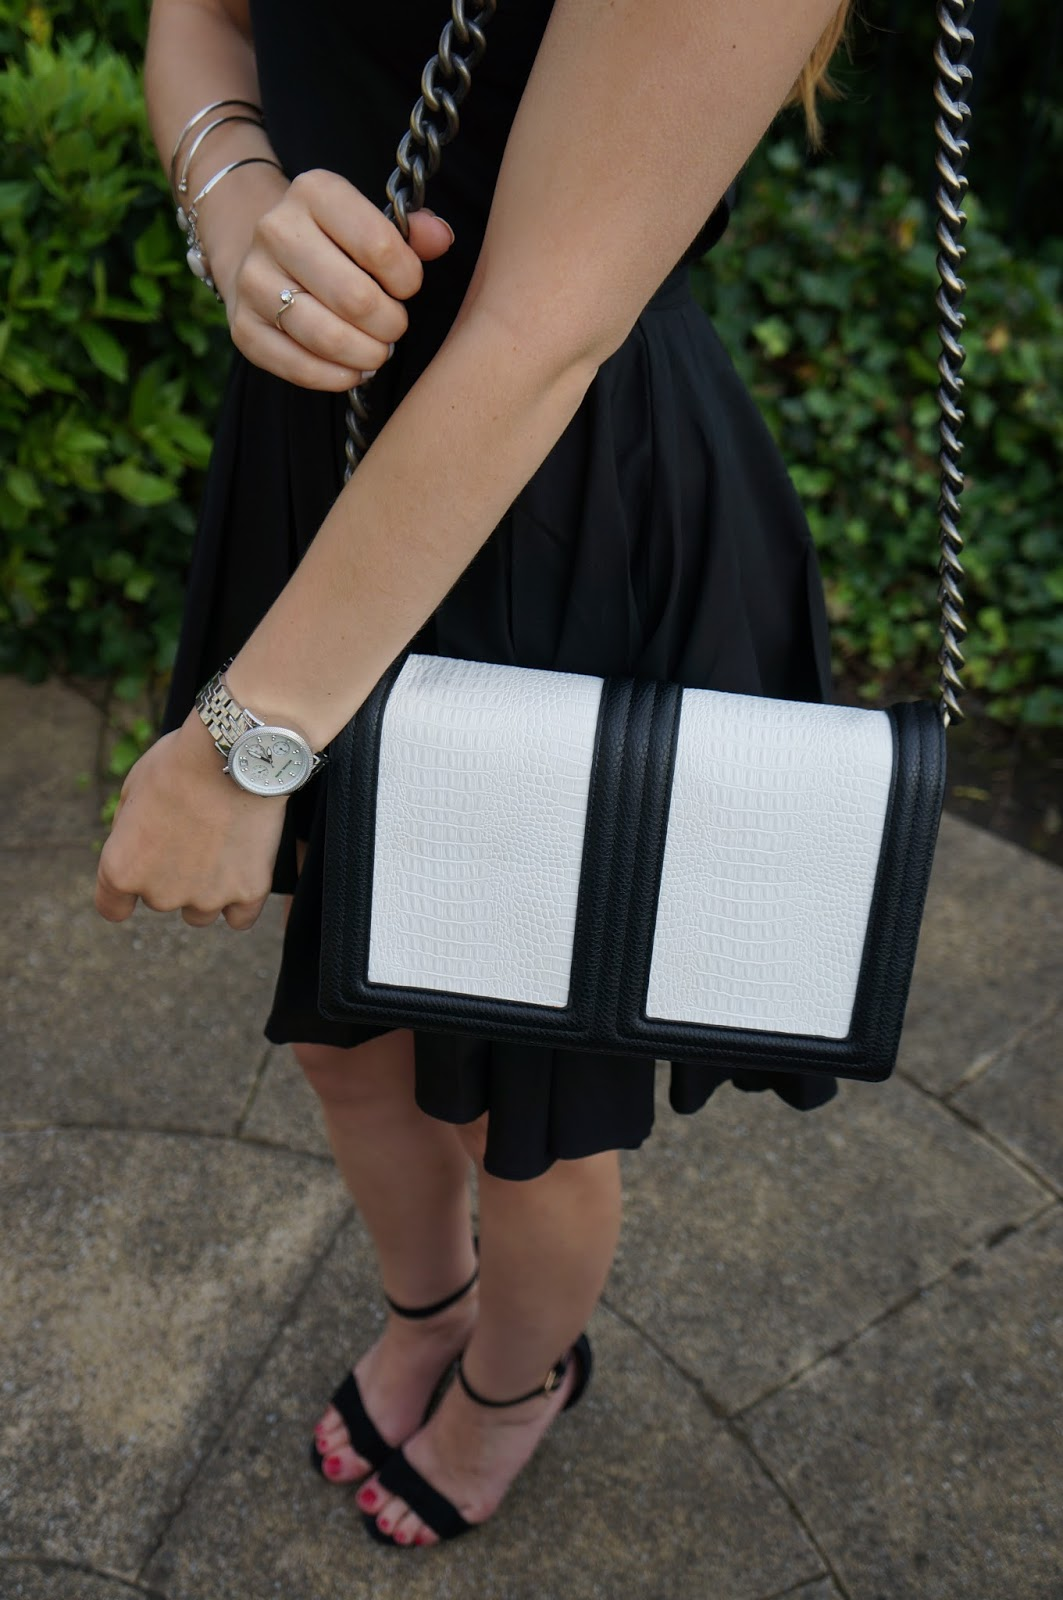 beautiful monochrome accessories to compliment a black dress